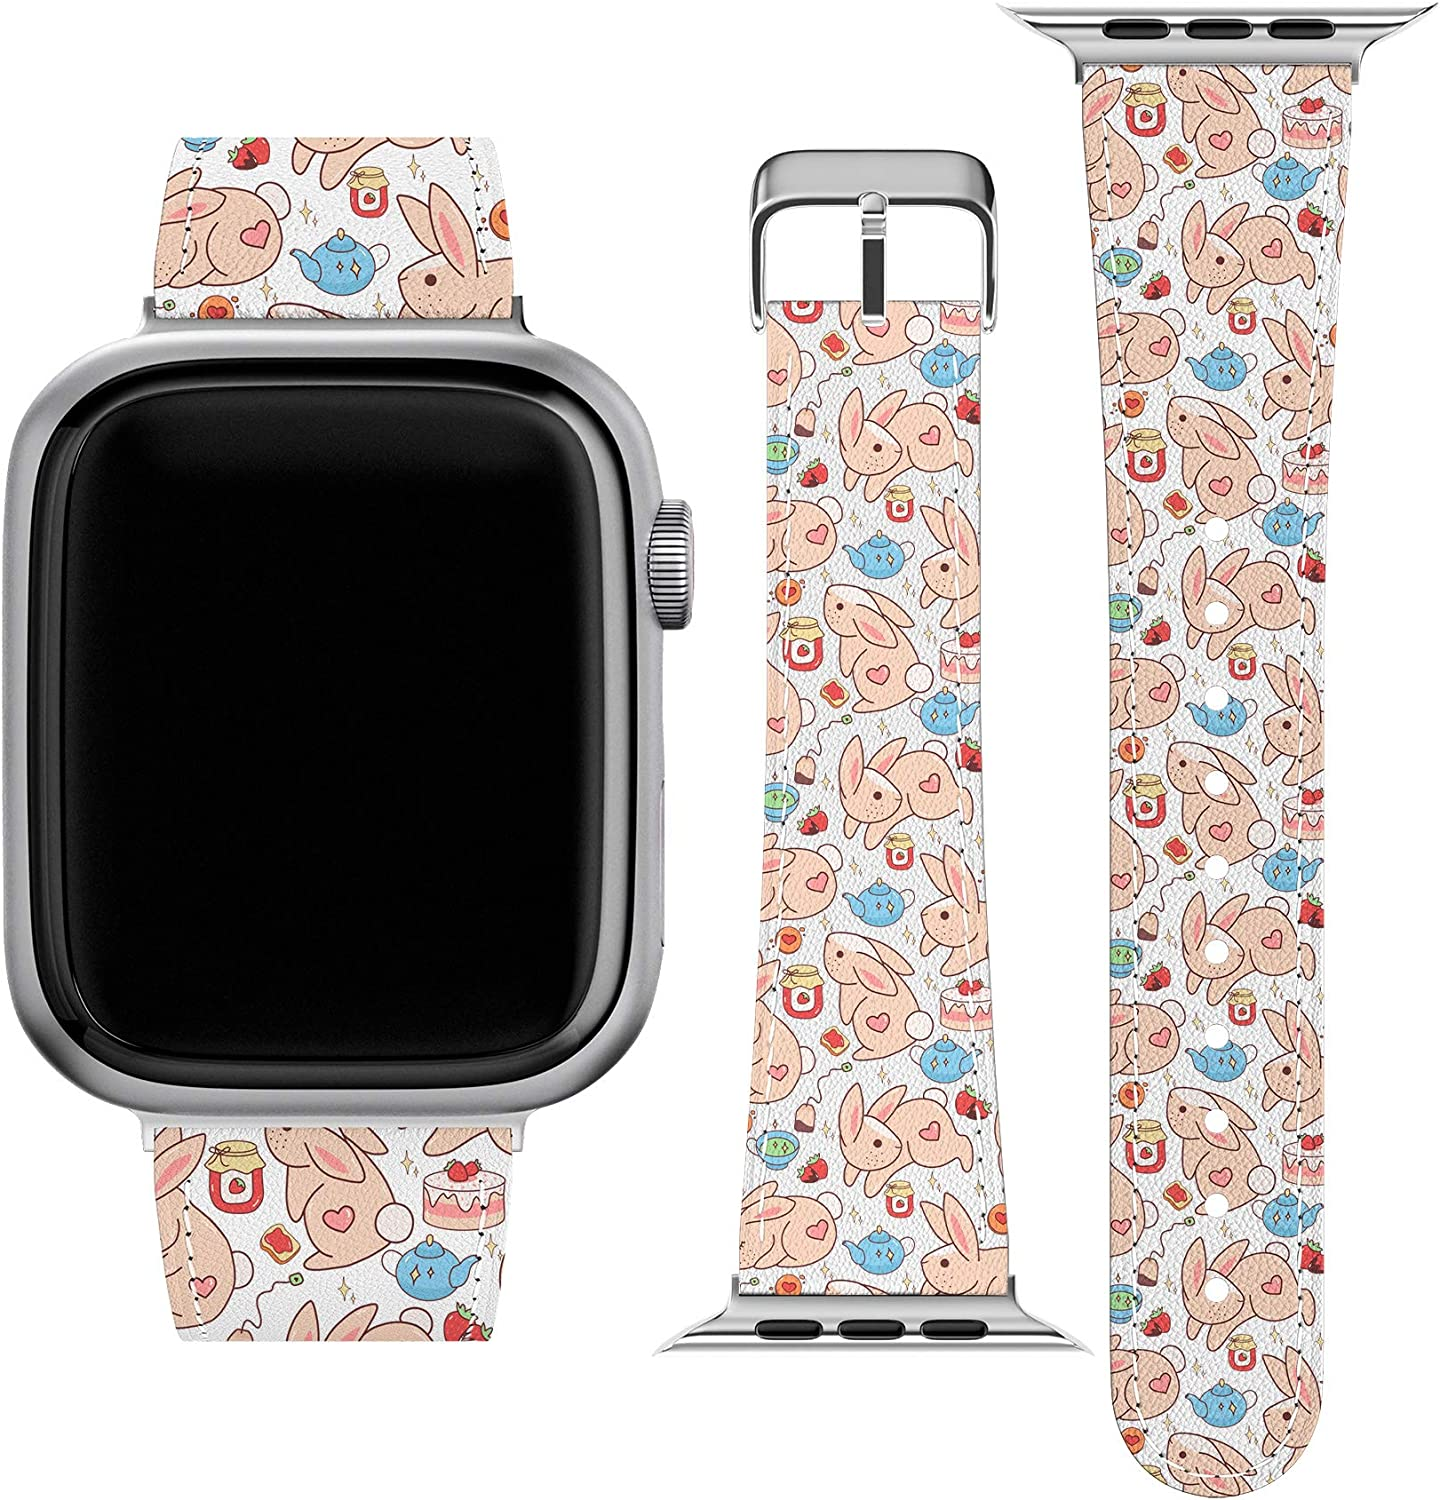 Lex Altern Band Compatible with Apple Watch Series 6 SE 5 4 3 2 1 38mm 40mm 42mm 44mm Replacement Strap for iWatch Kawaii Wristband Bunnies Thin Strawberry Cottagecore Cute Durable Bunny Stylish wh561